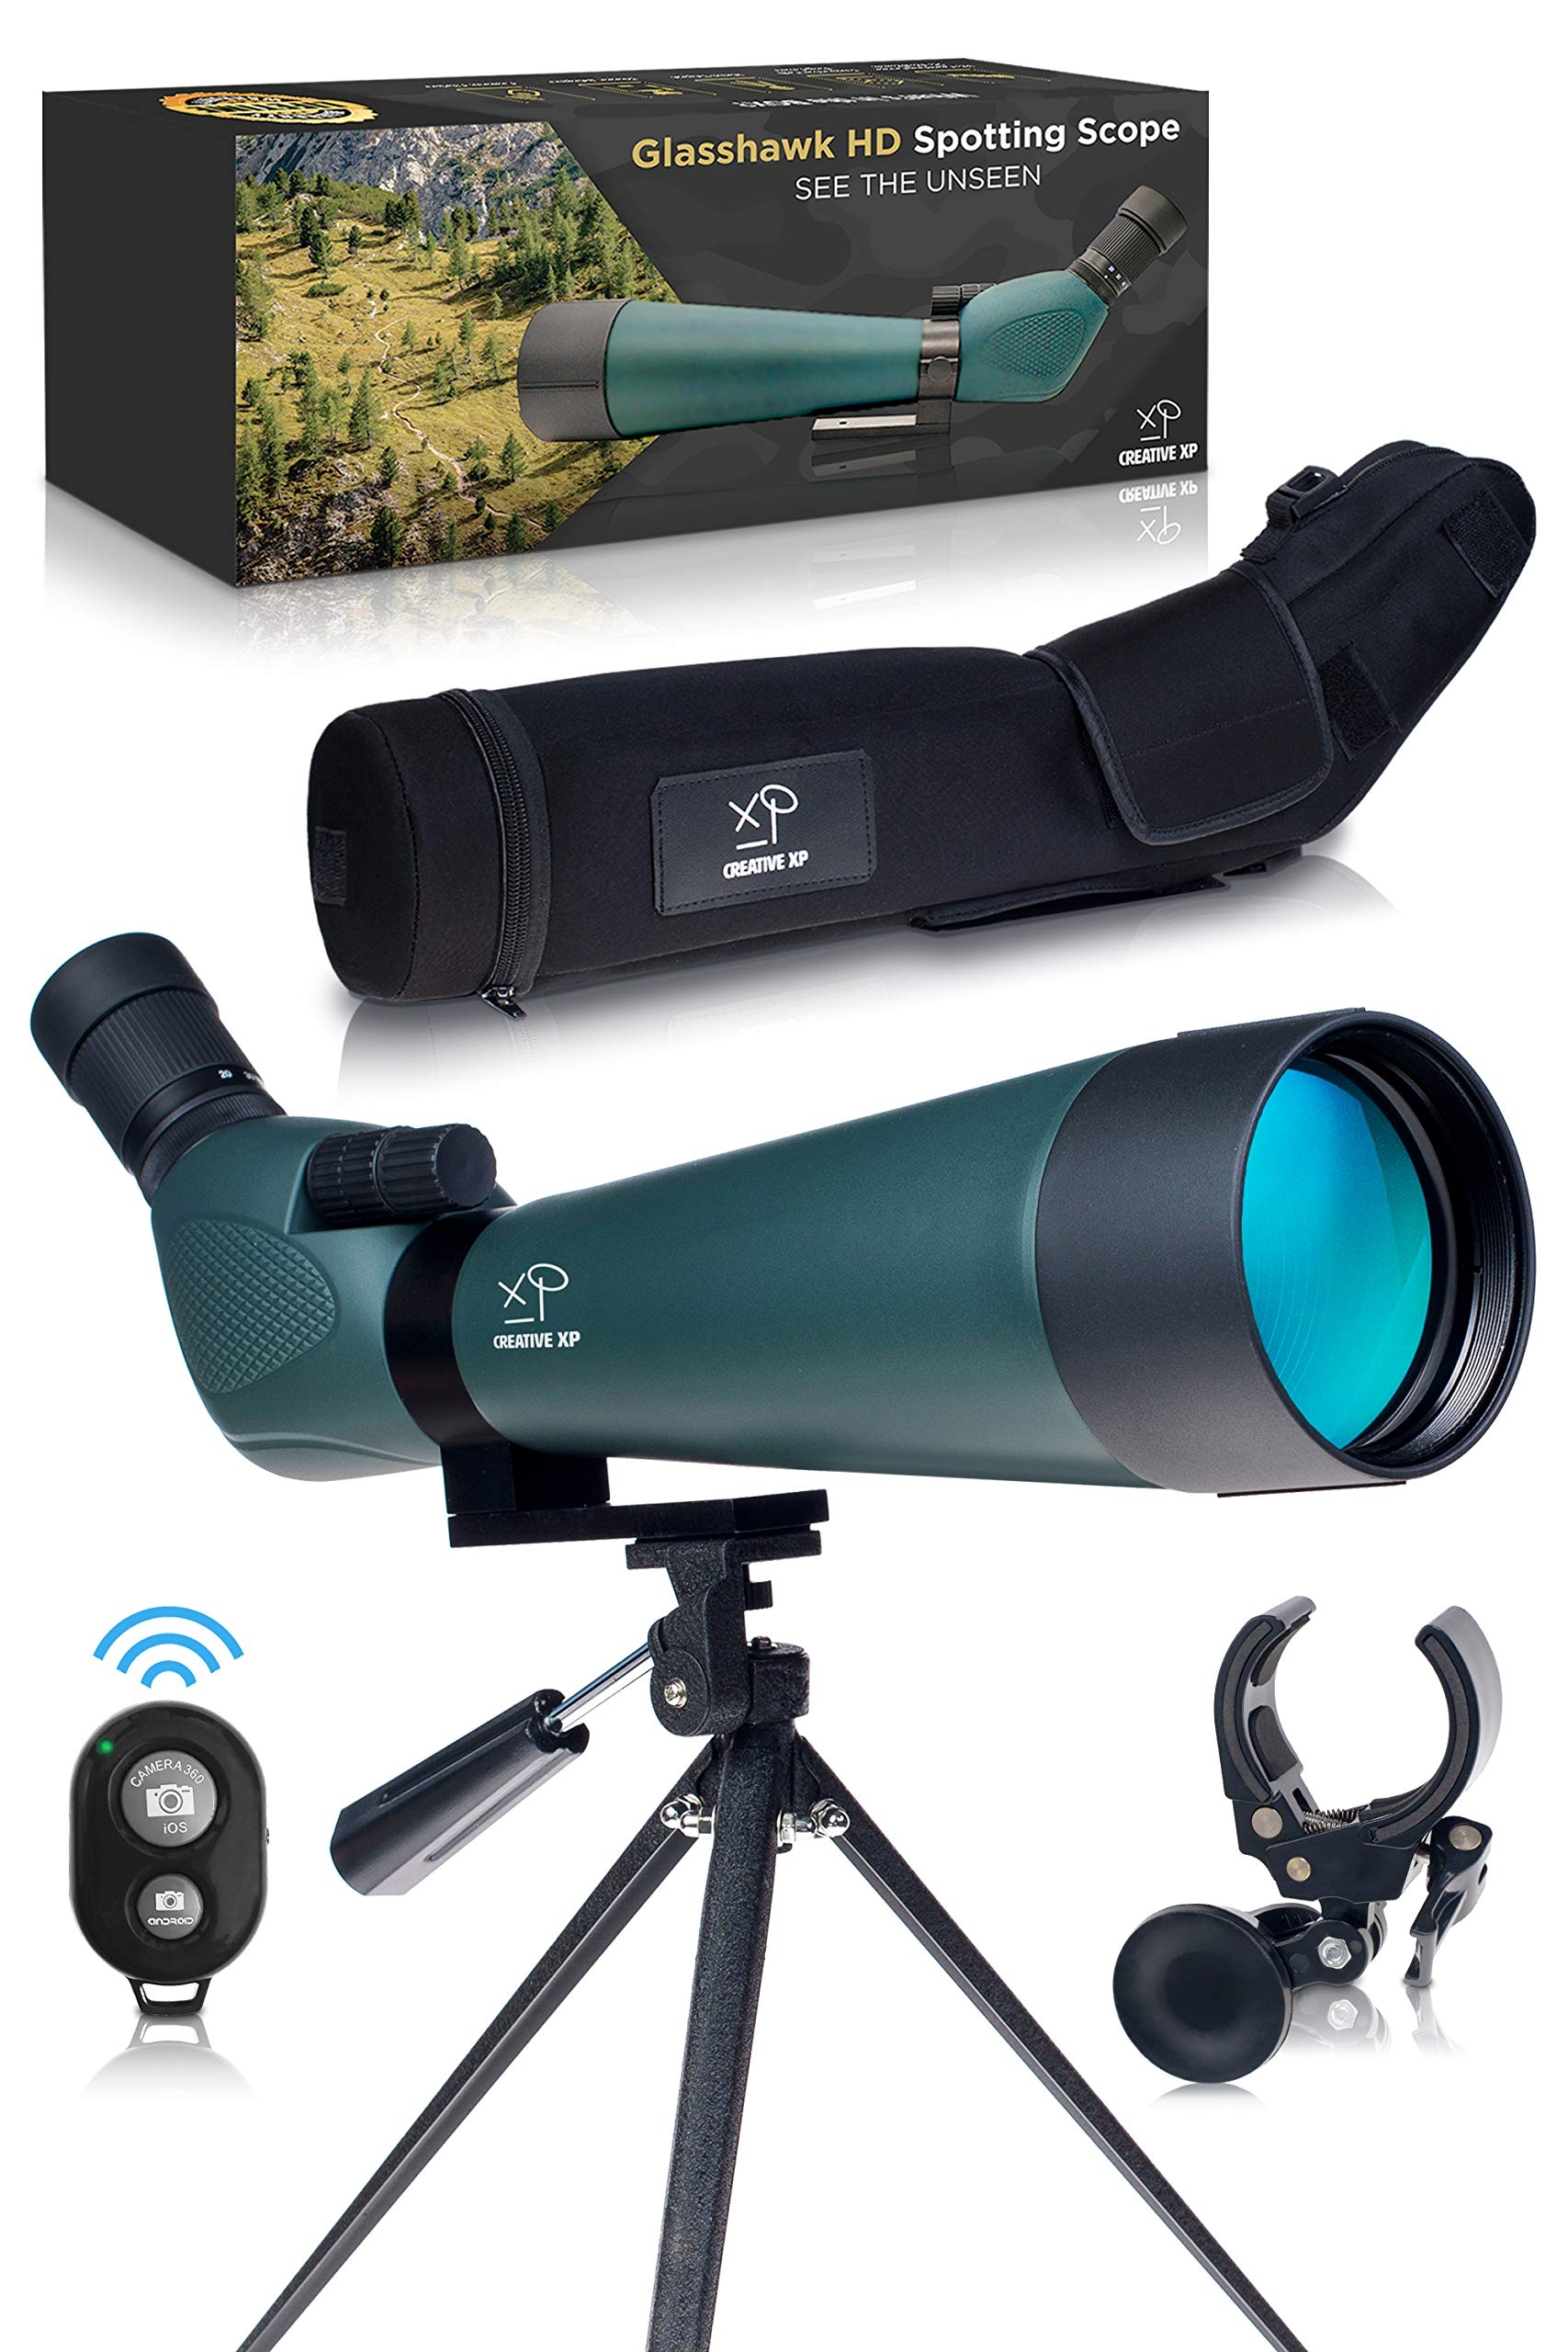 HD Spotting Scope with Tripod 20 - 60x80mm - BAK 4 Prism Spotting Scopes for Target Shooting Hunting Astronomy Bird Watching - 100% Waterproof Shockproof IP67 - Includes Phone Adapter and Clicker by CreativeXP